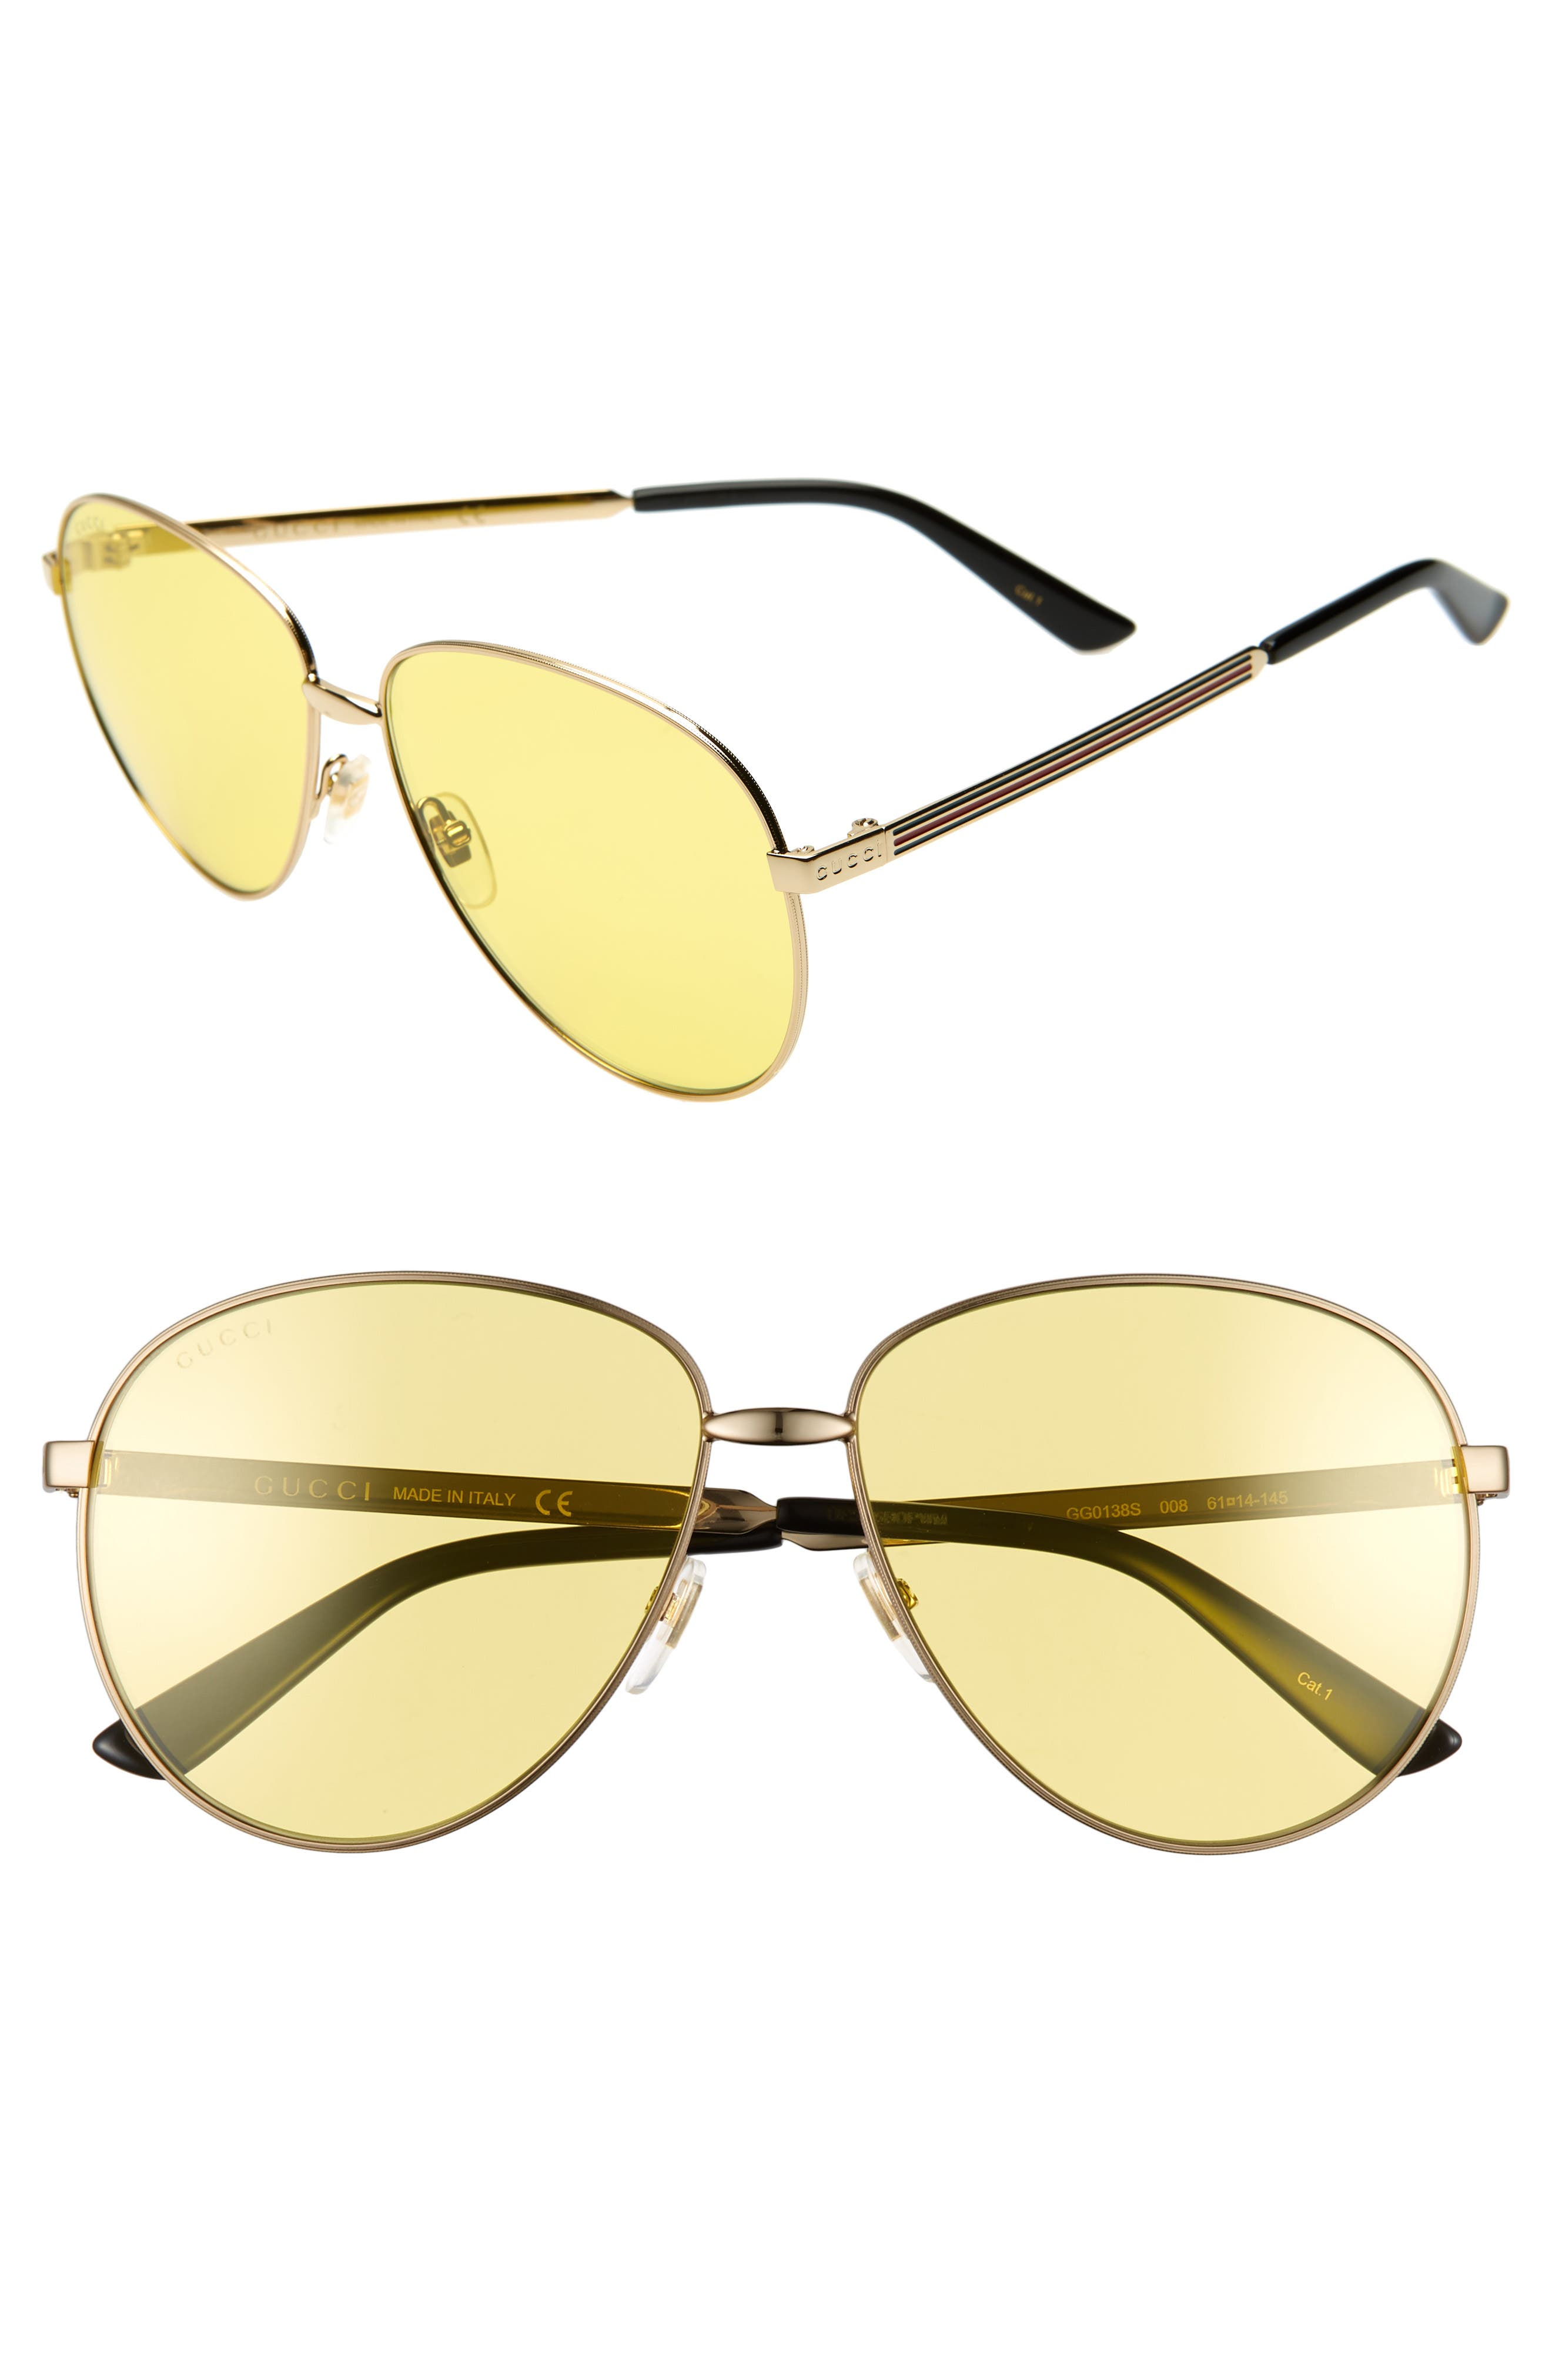 Gucci 61Mm Metal Aviator Sunglasses - Gold/ Solid Yellow